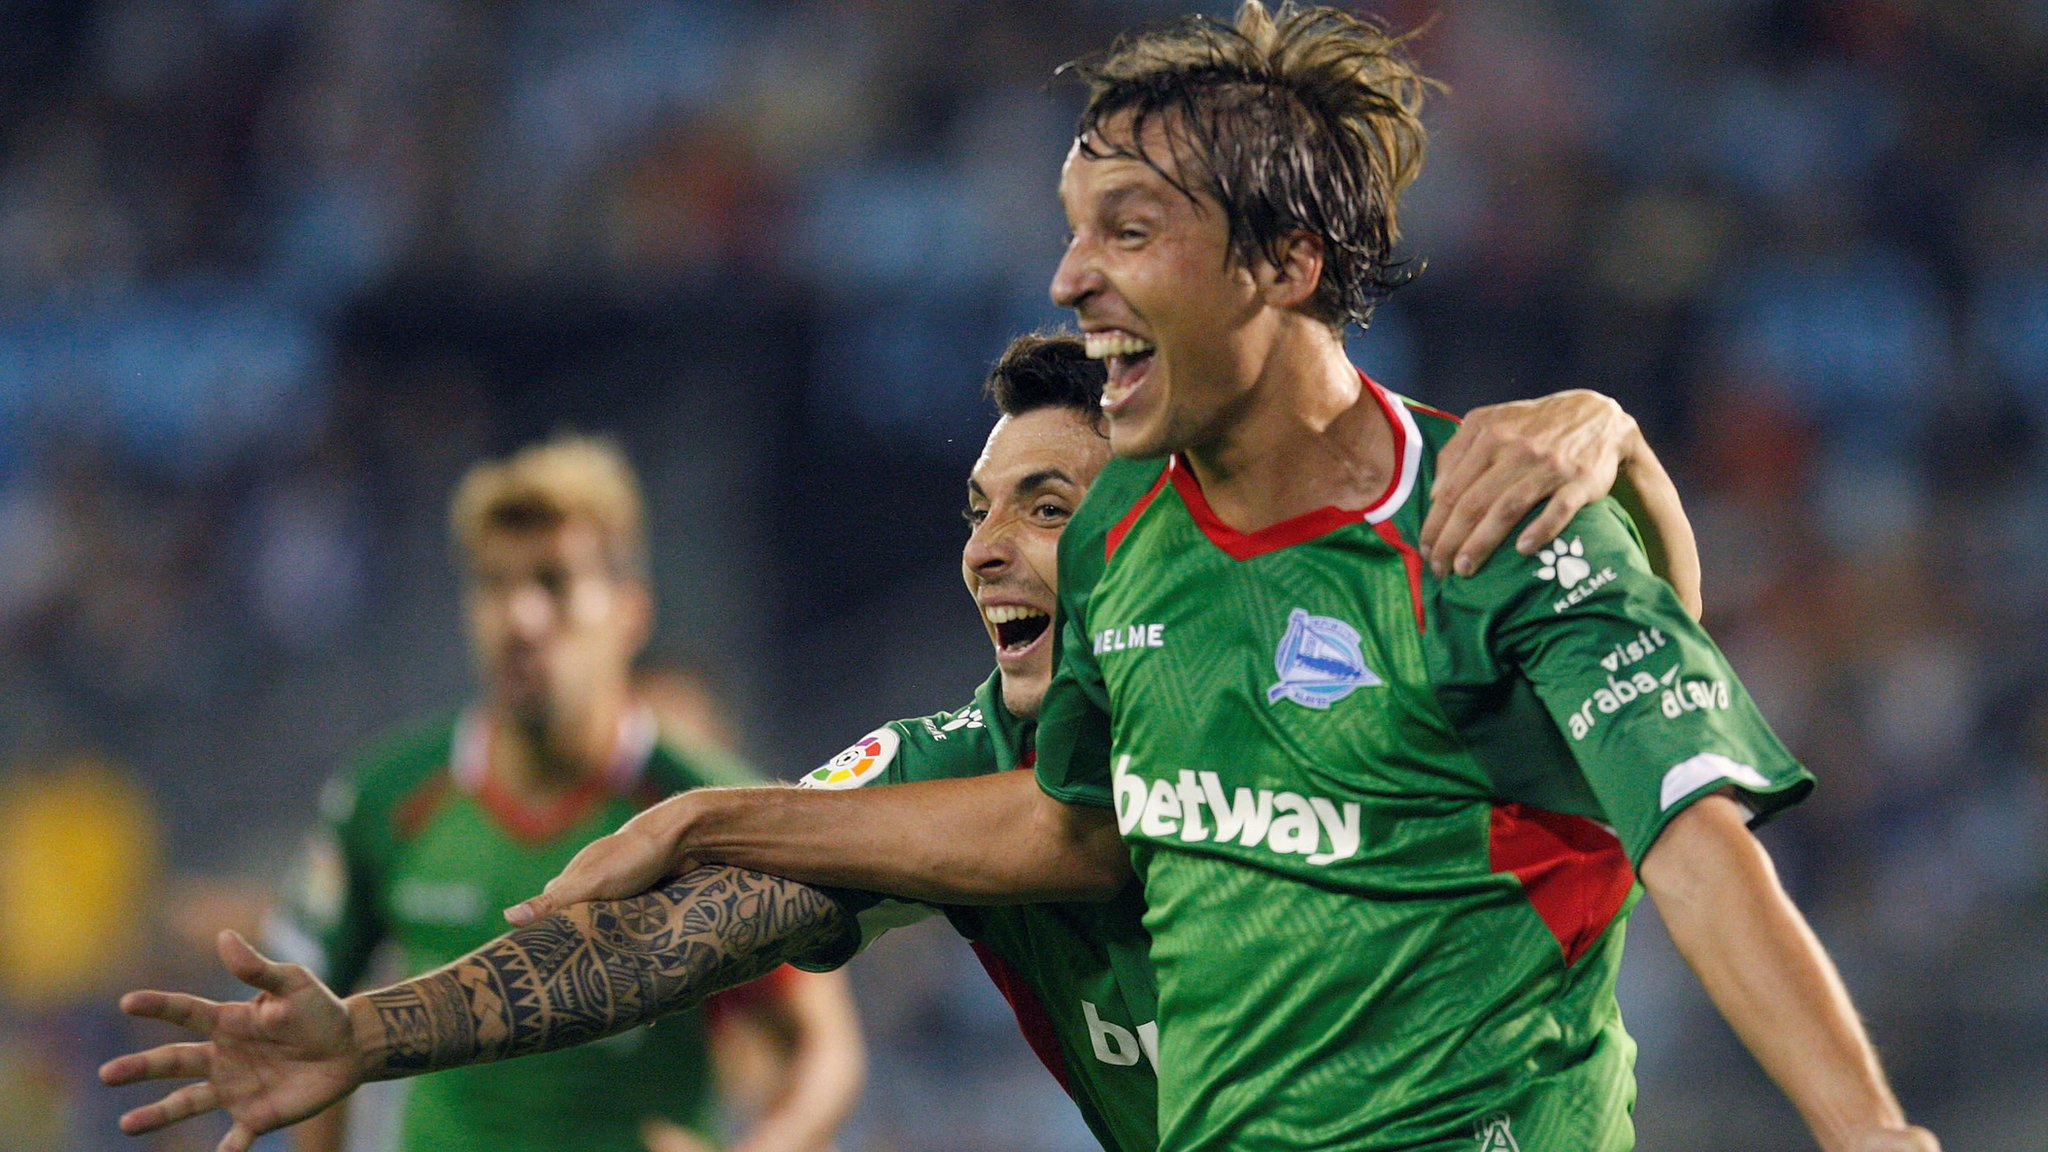 Celta Vigo 0-1 Alaves: Basque side go top of La Liga with win